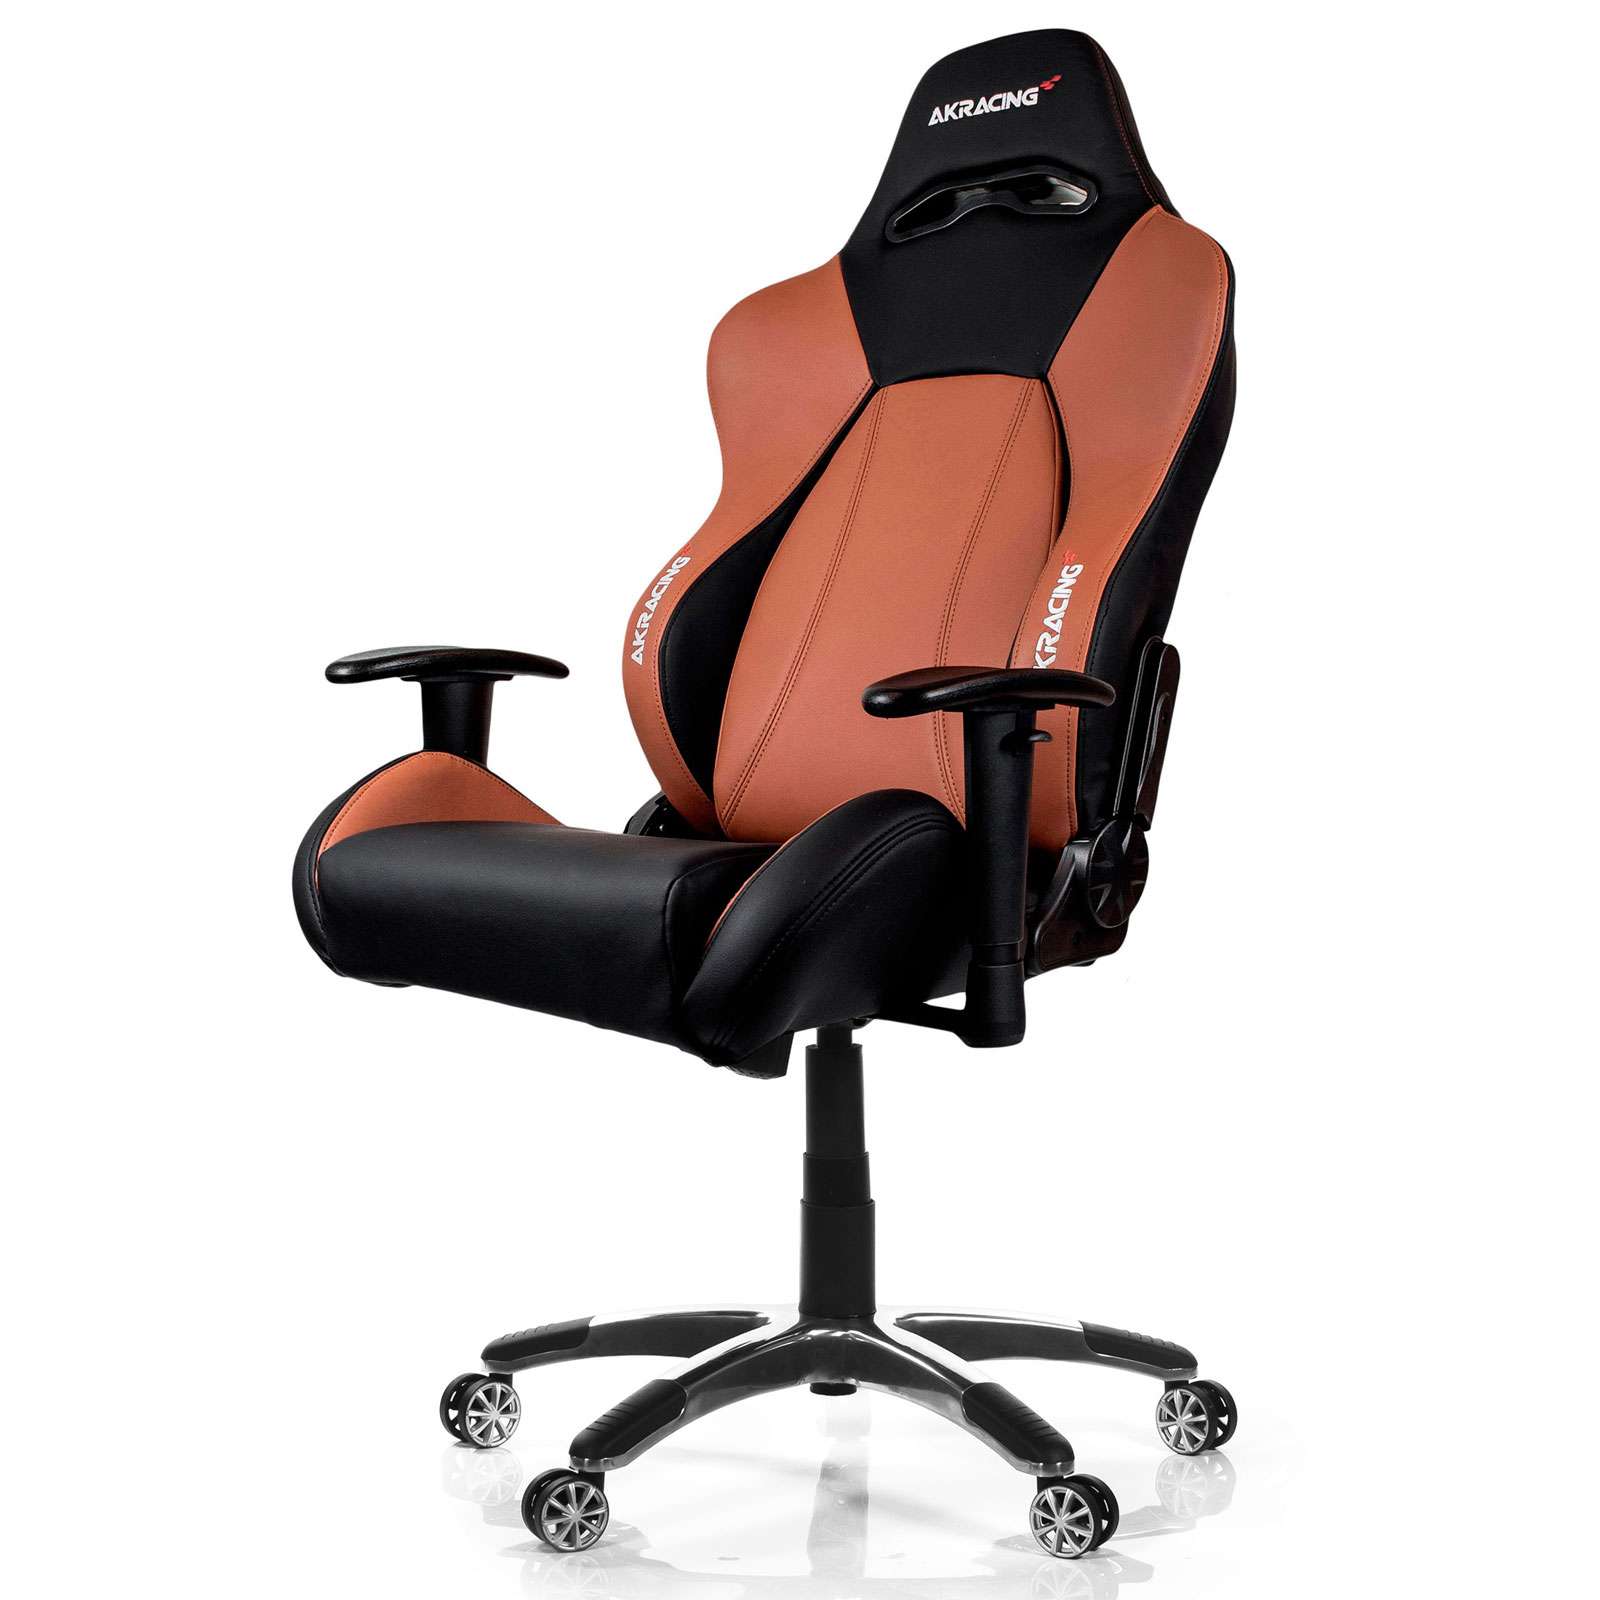 Fauteuil Bureau Gamer Akracing Premium Gaming Chair Marron Fauteuil Gamer